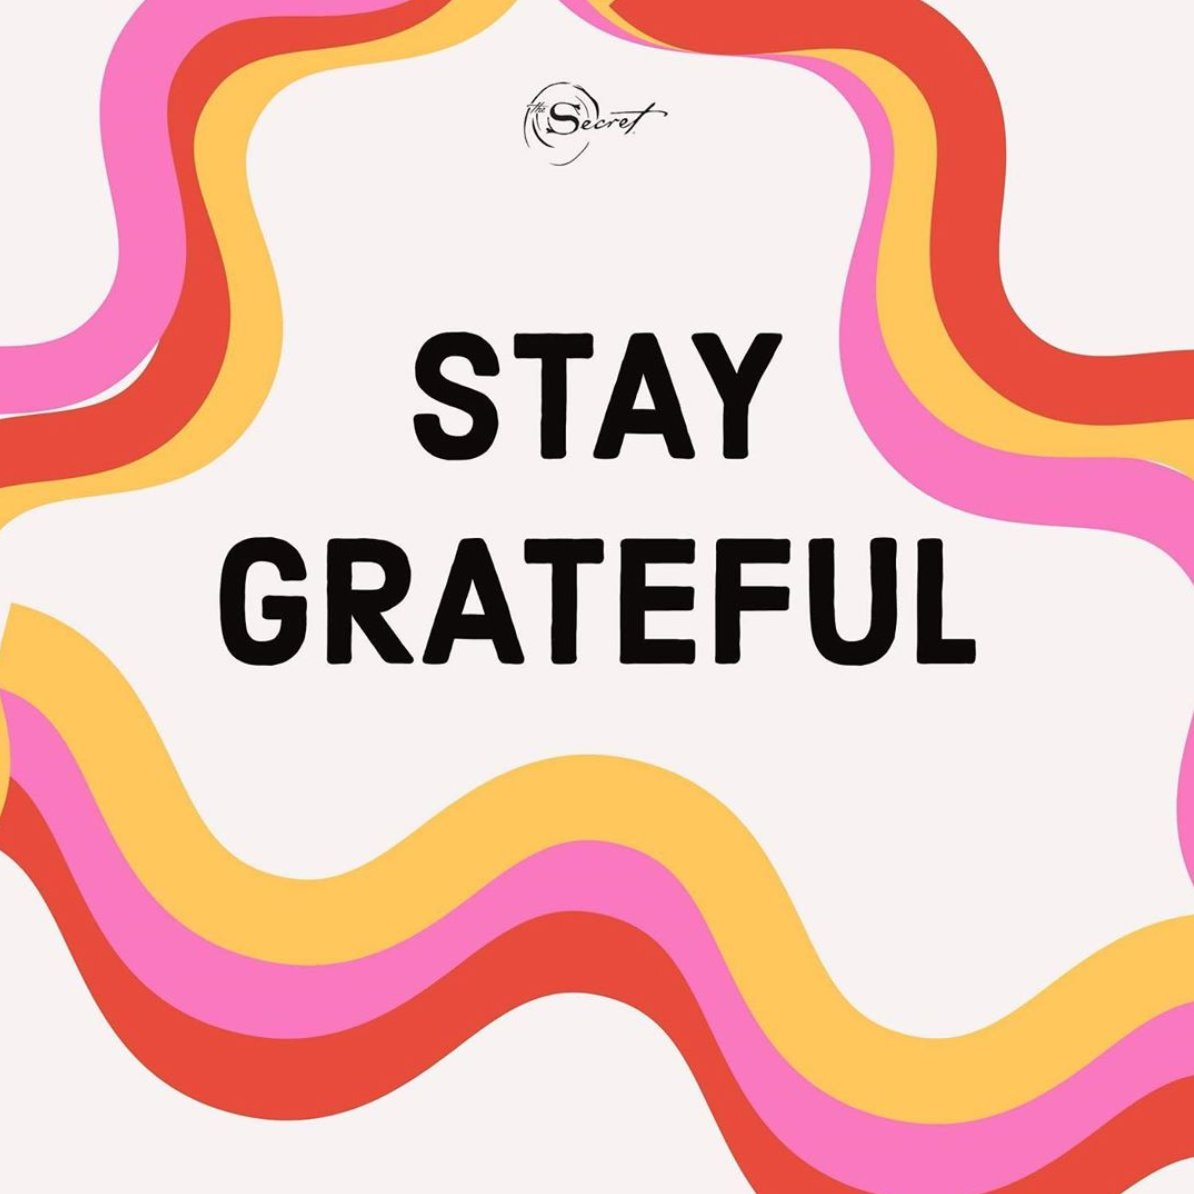 When you're grateful you're not focusing on you. It stops the misery of me. What do you do to stay grateful?